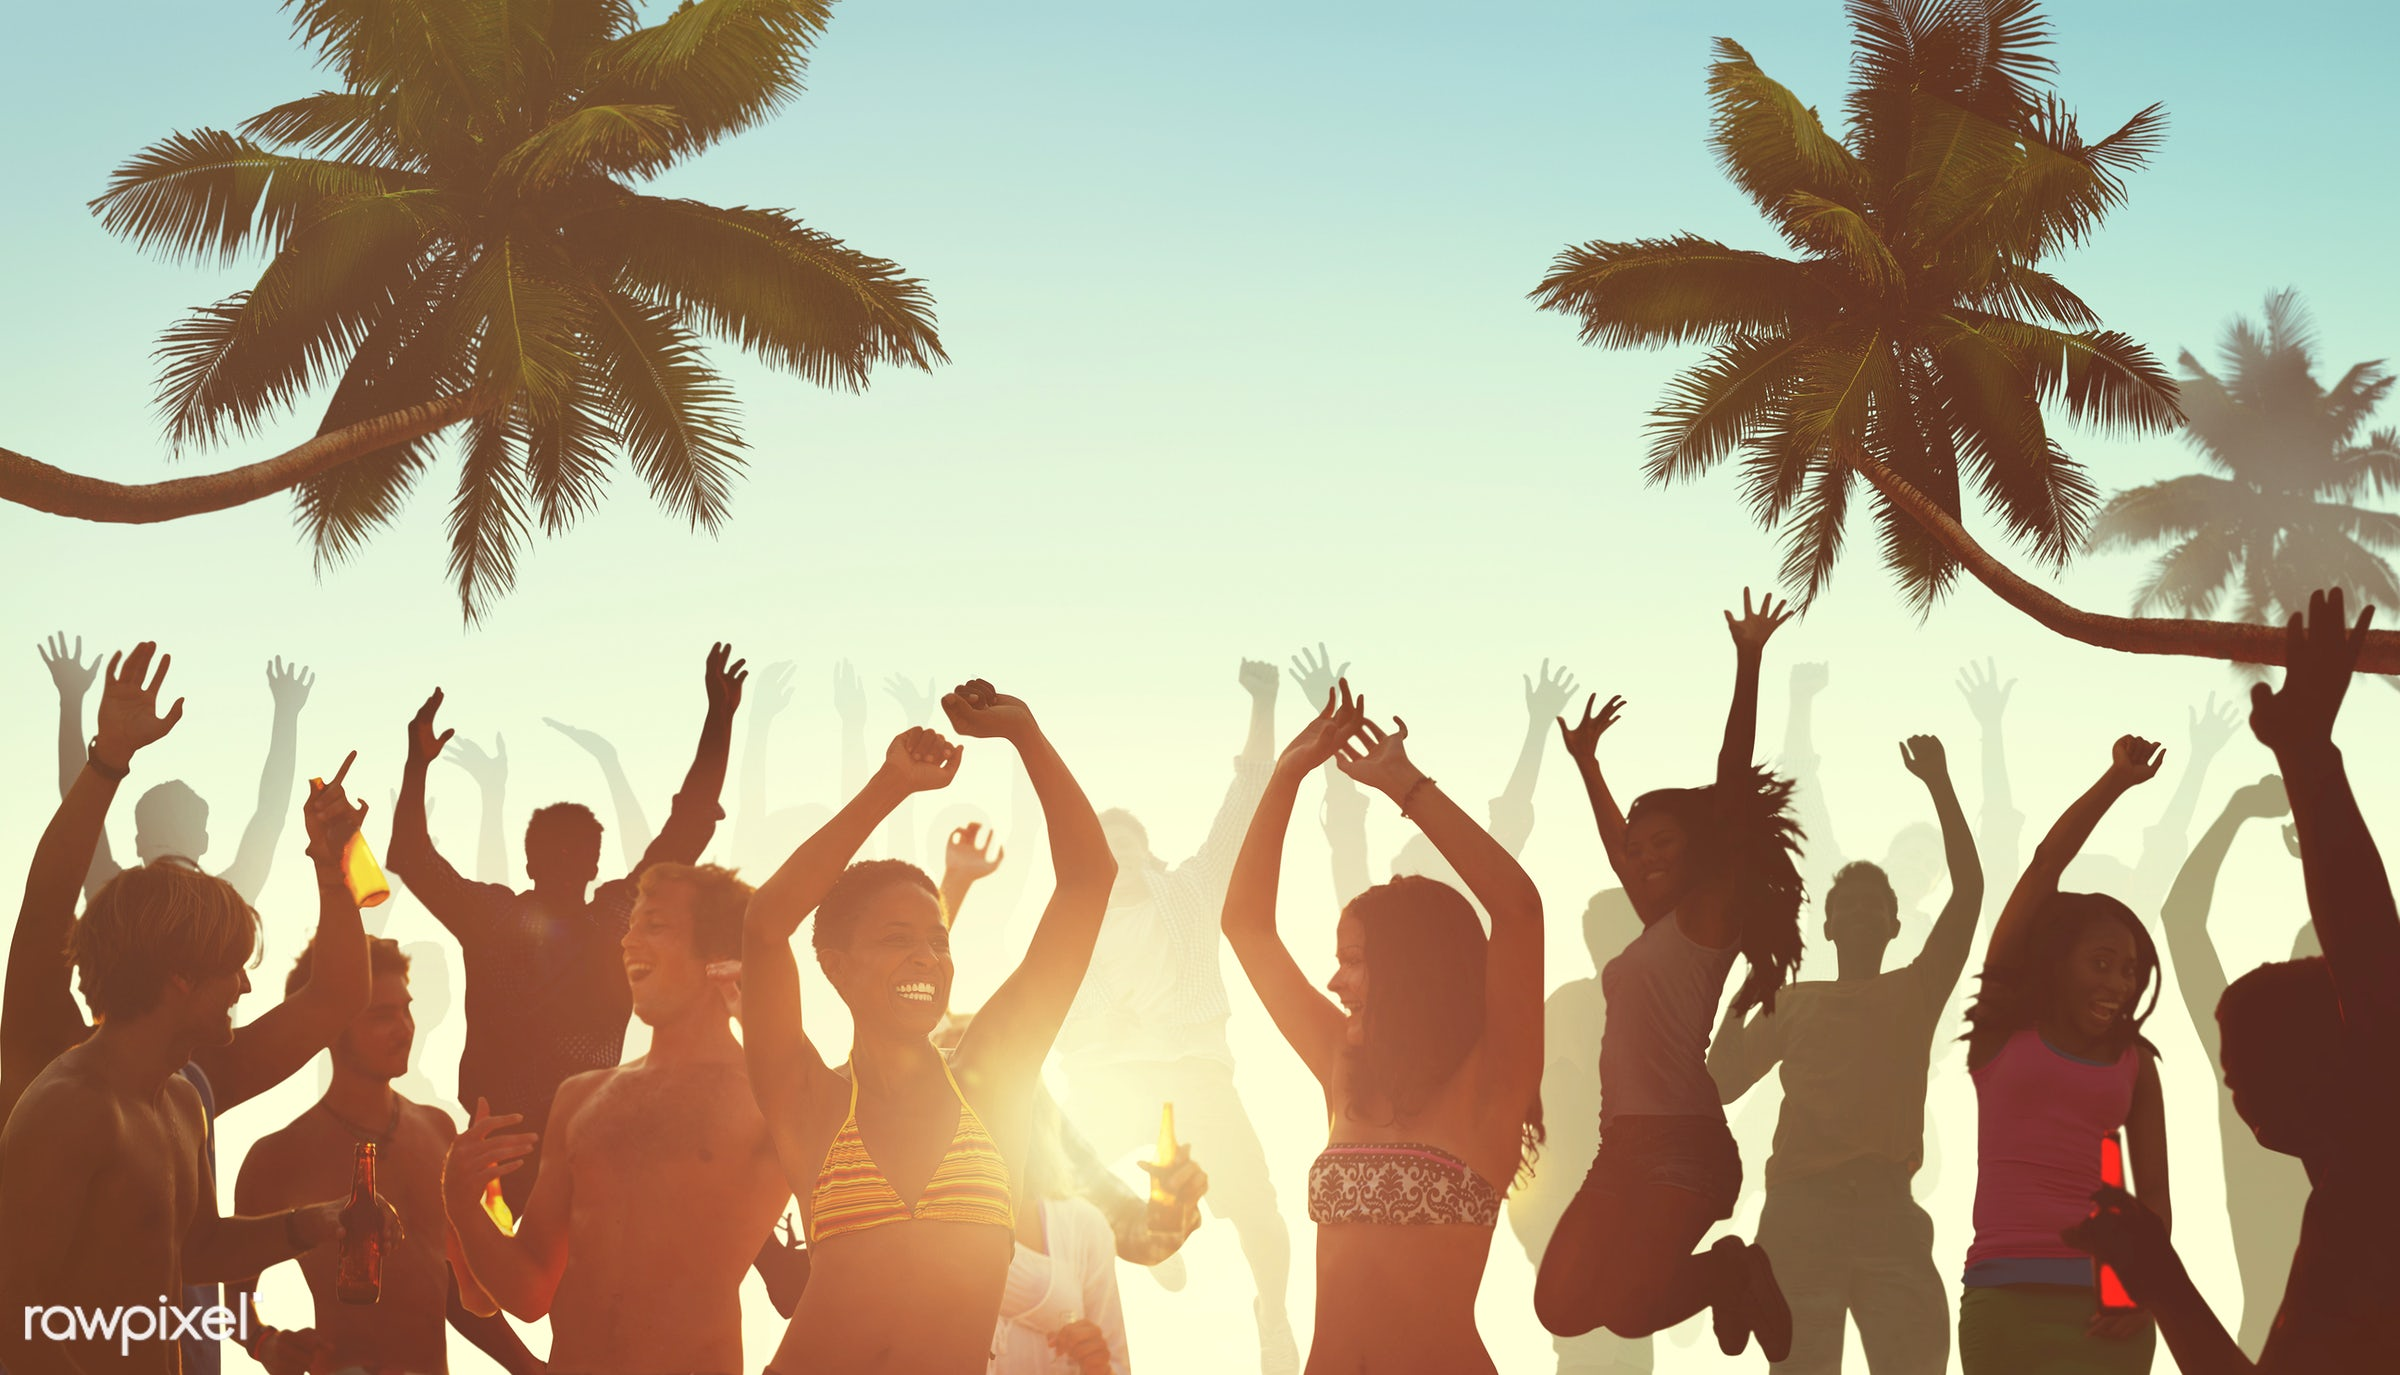 activity, adult, alcohol, arms outstretched, arms raised, back lit, beach, beer, bikini, celebration, cheerful, cheering,...